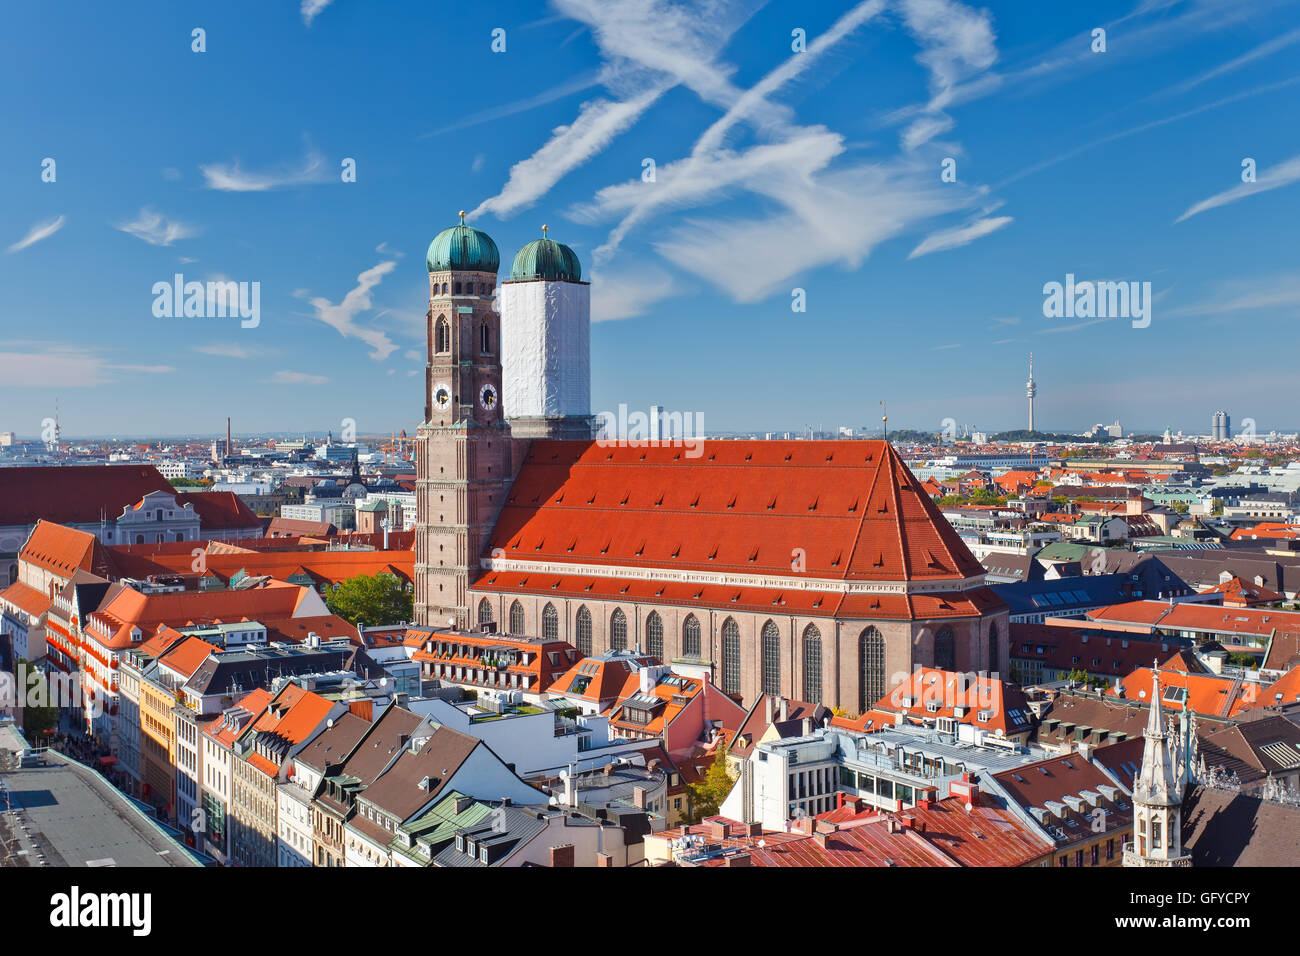 Aerial view of Munchen - Stock Image